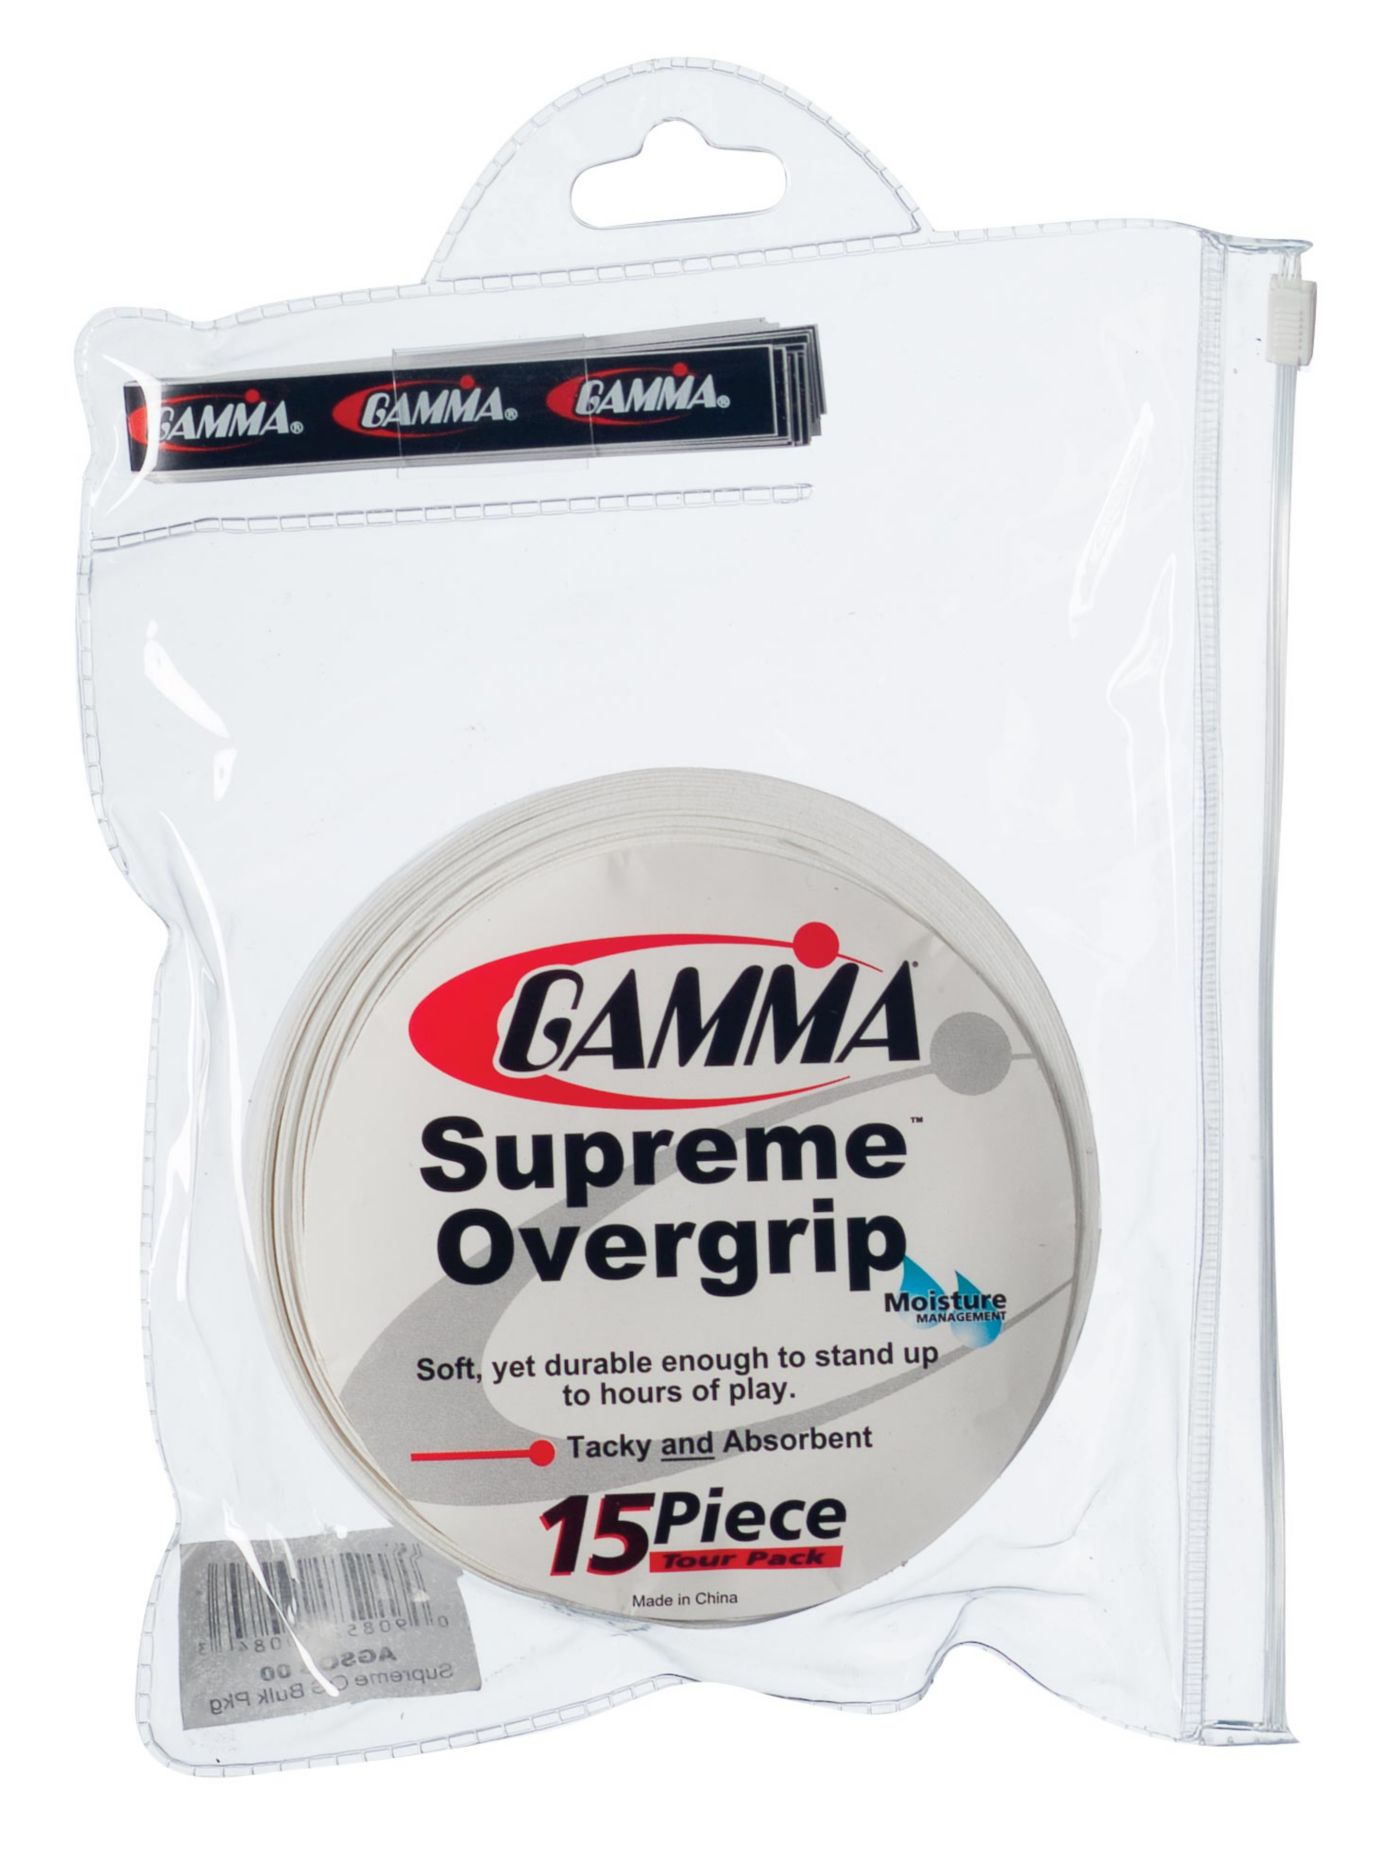 GAMMA Supreme Overgrip - 15 Piece Tour Pack